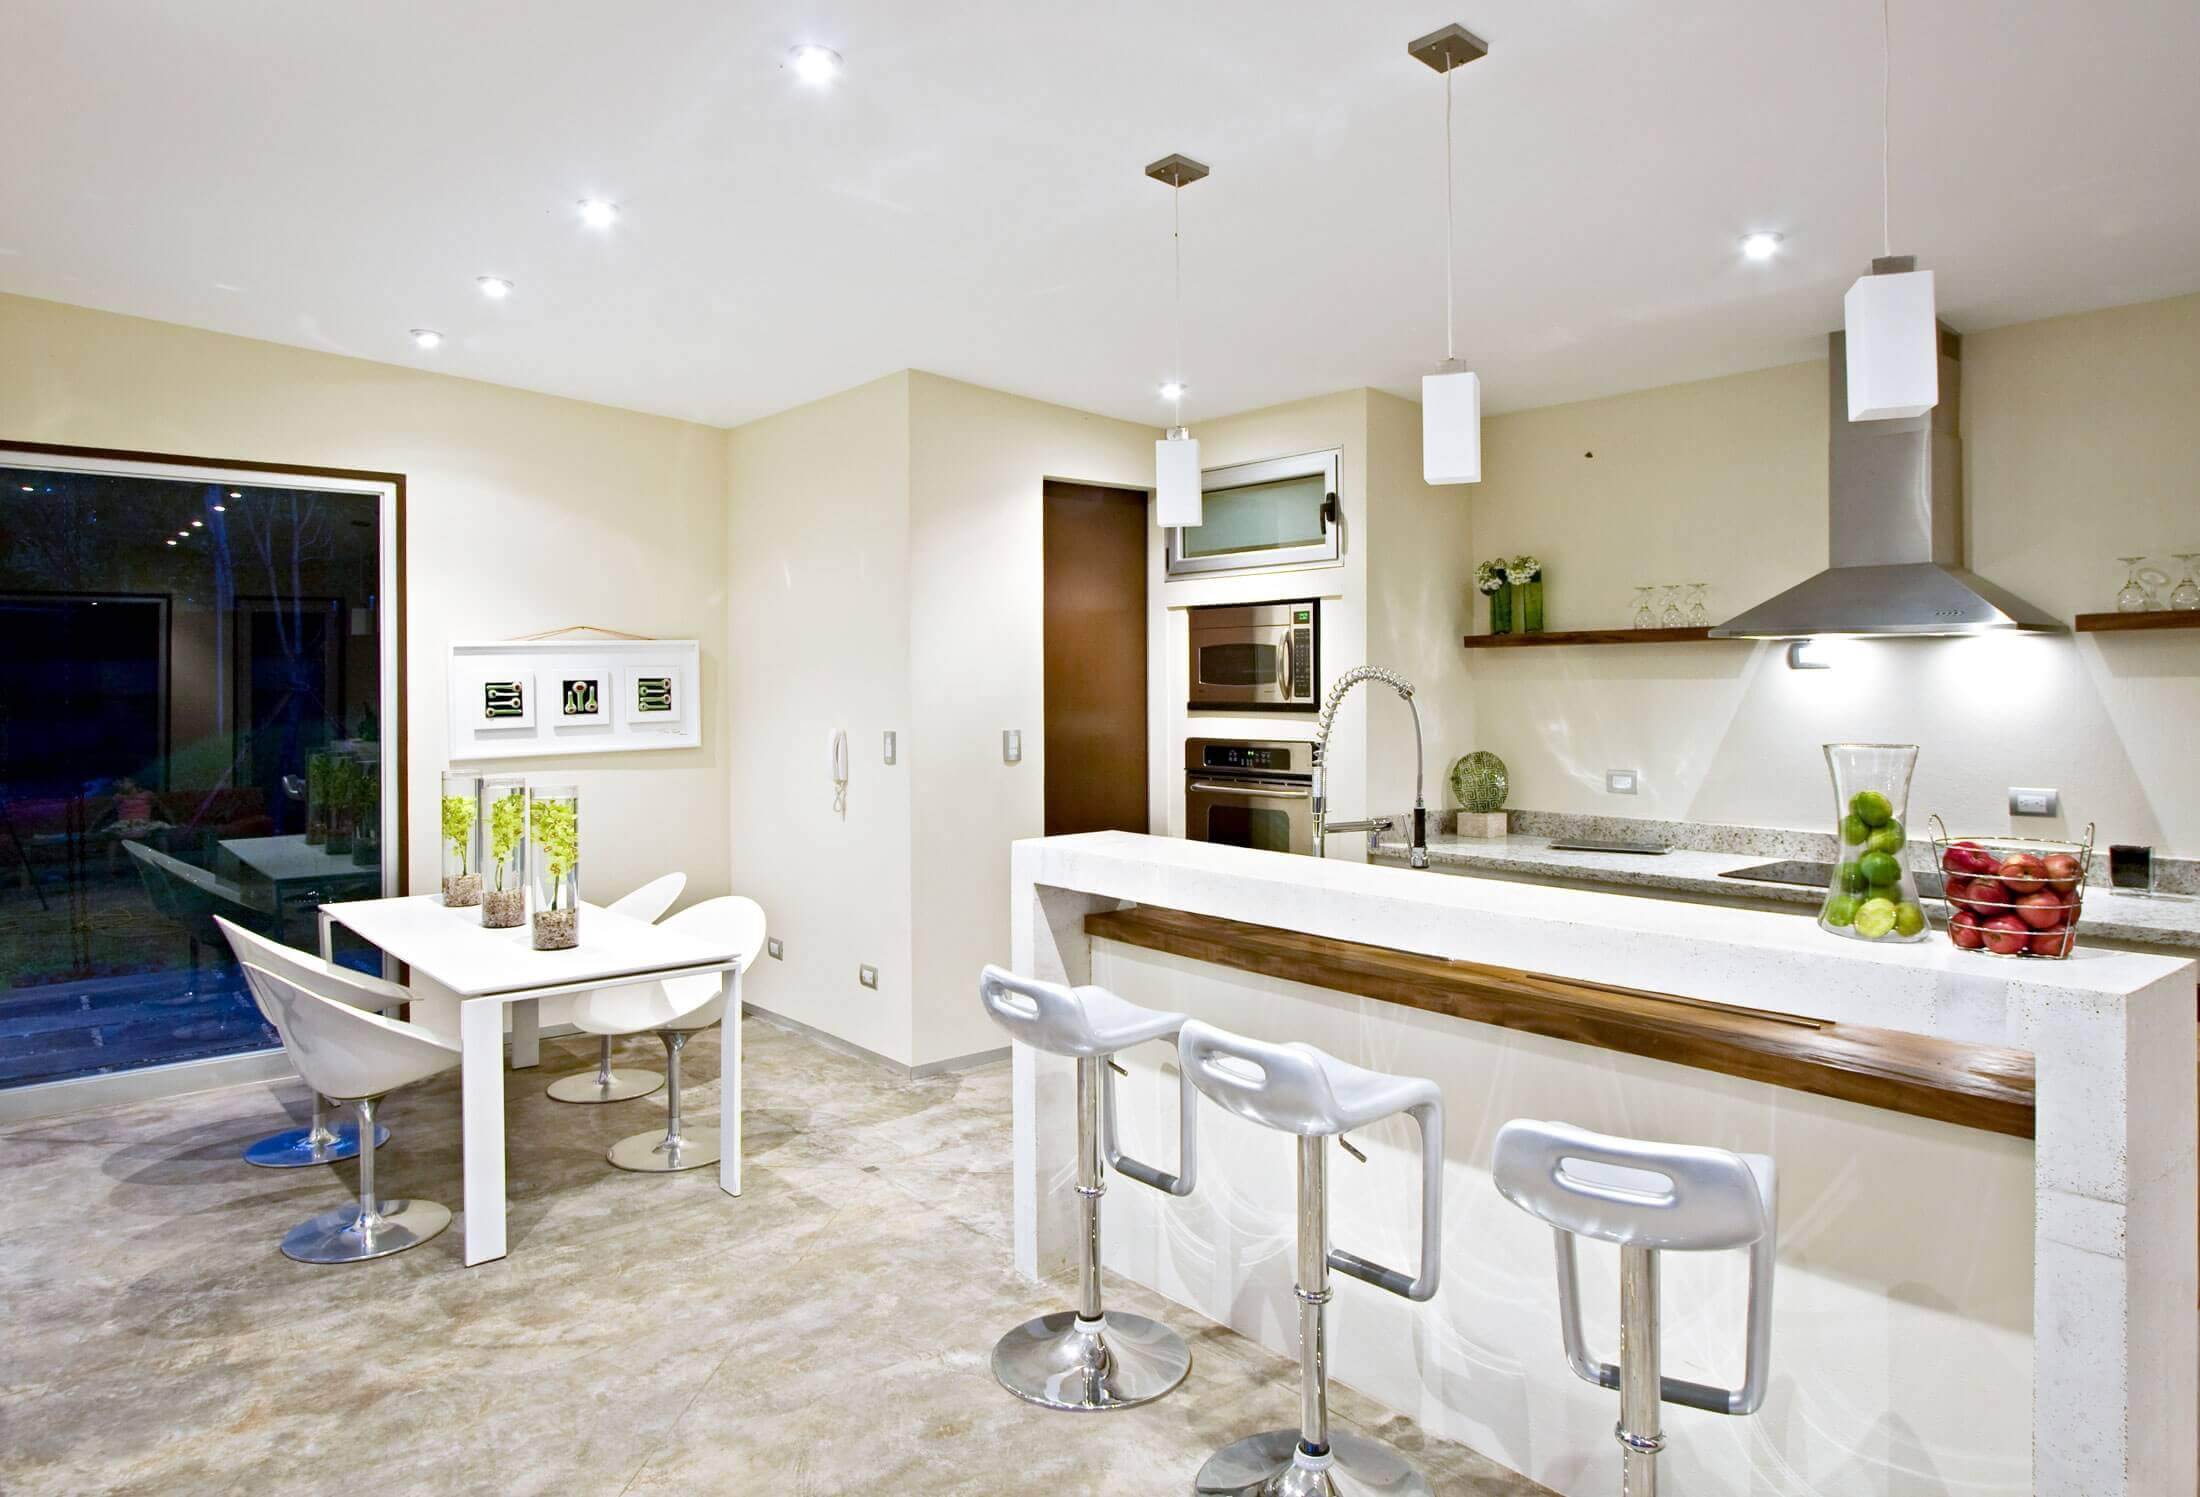 Kitchen Island with Breakfast Bar and Stools